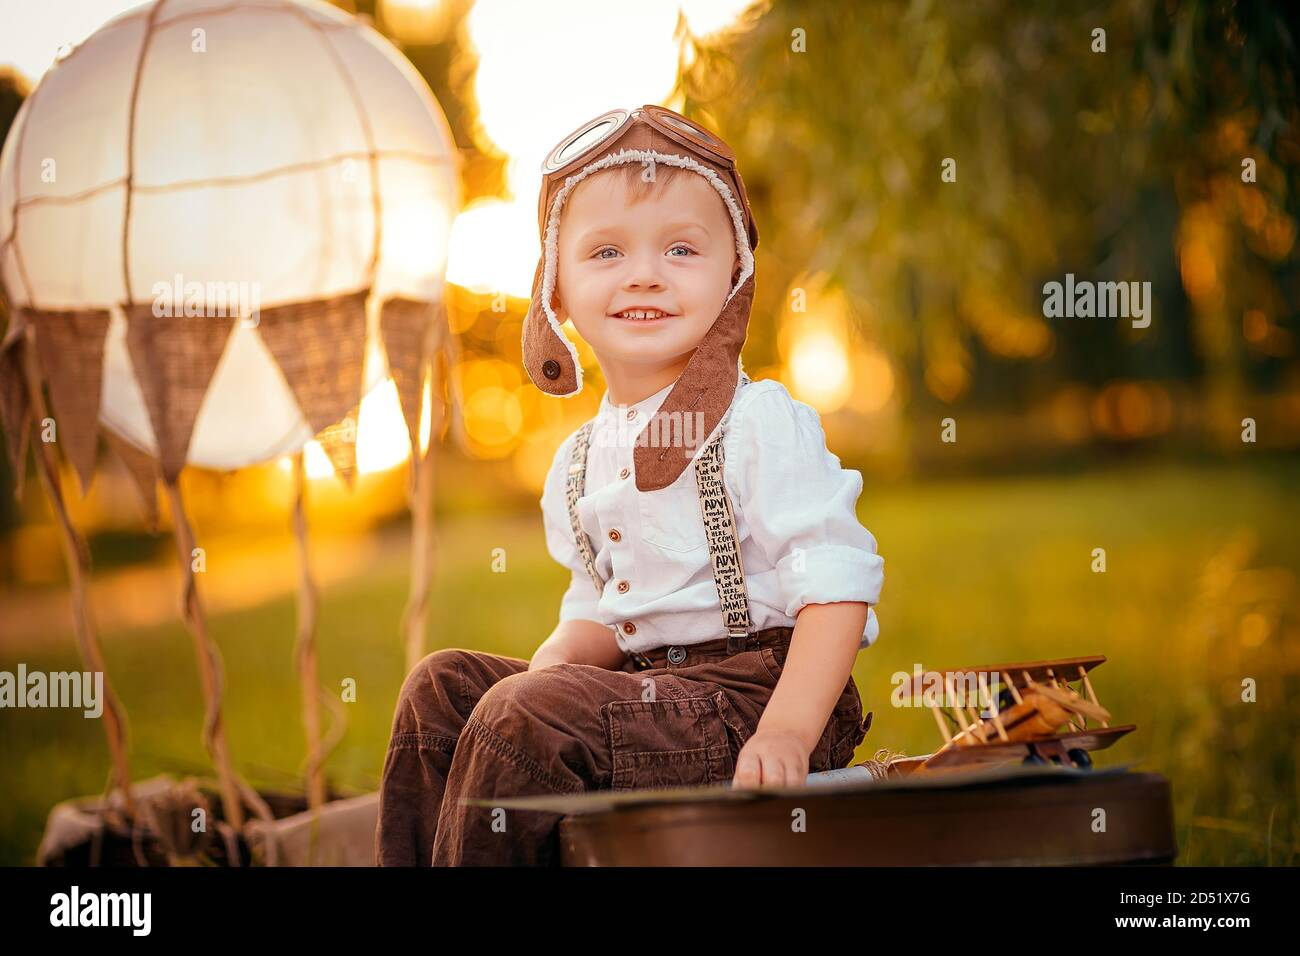 A little boy dreams of becoming a pilot. Vintage aviation hat. Stock Photo